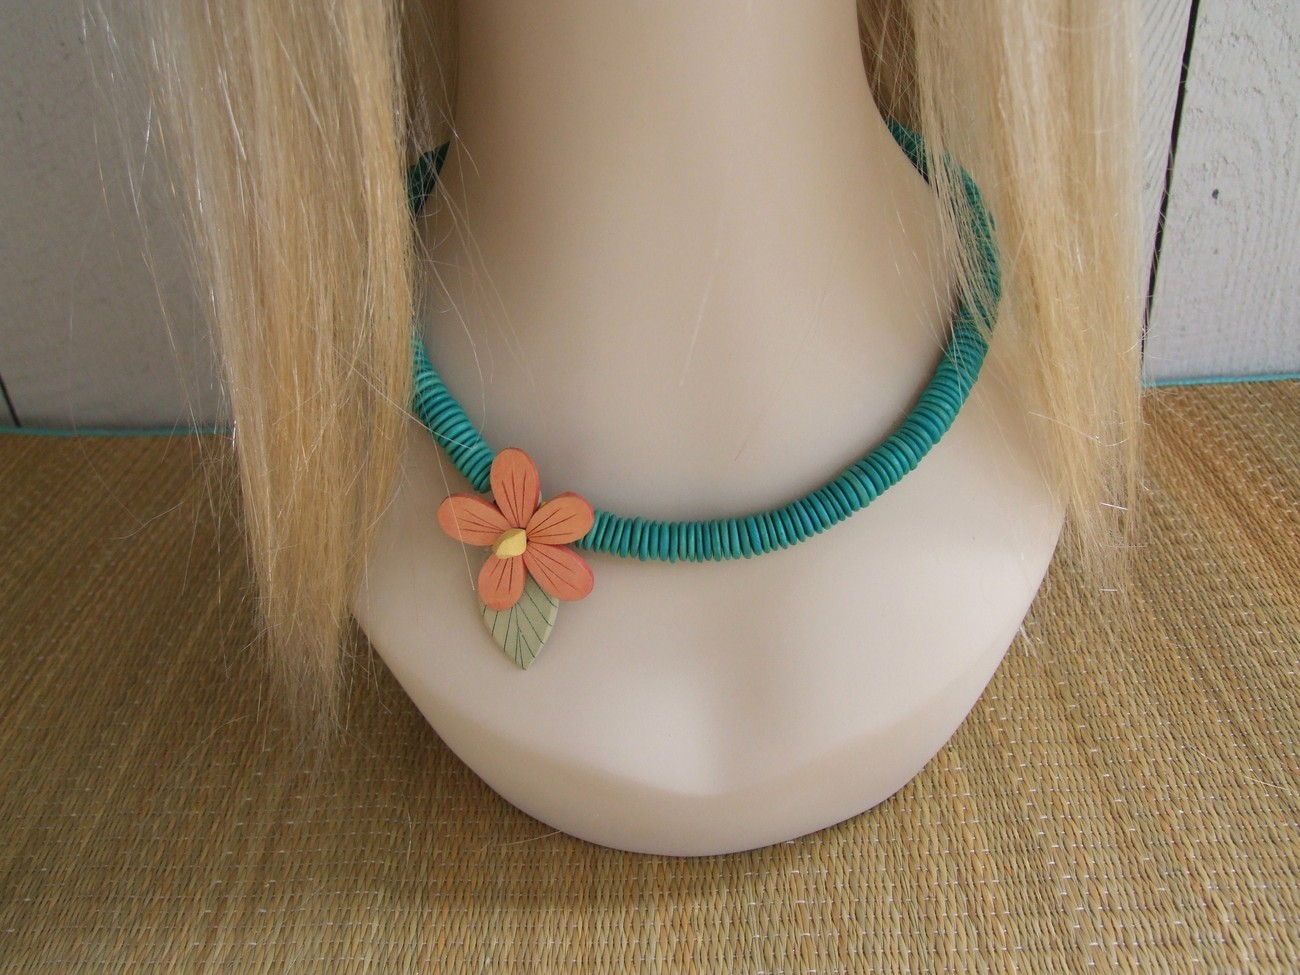 Primary image for Turqouise Flat Wood Beads With Peach Stained Flower Vintage Necklace